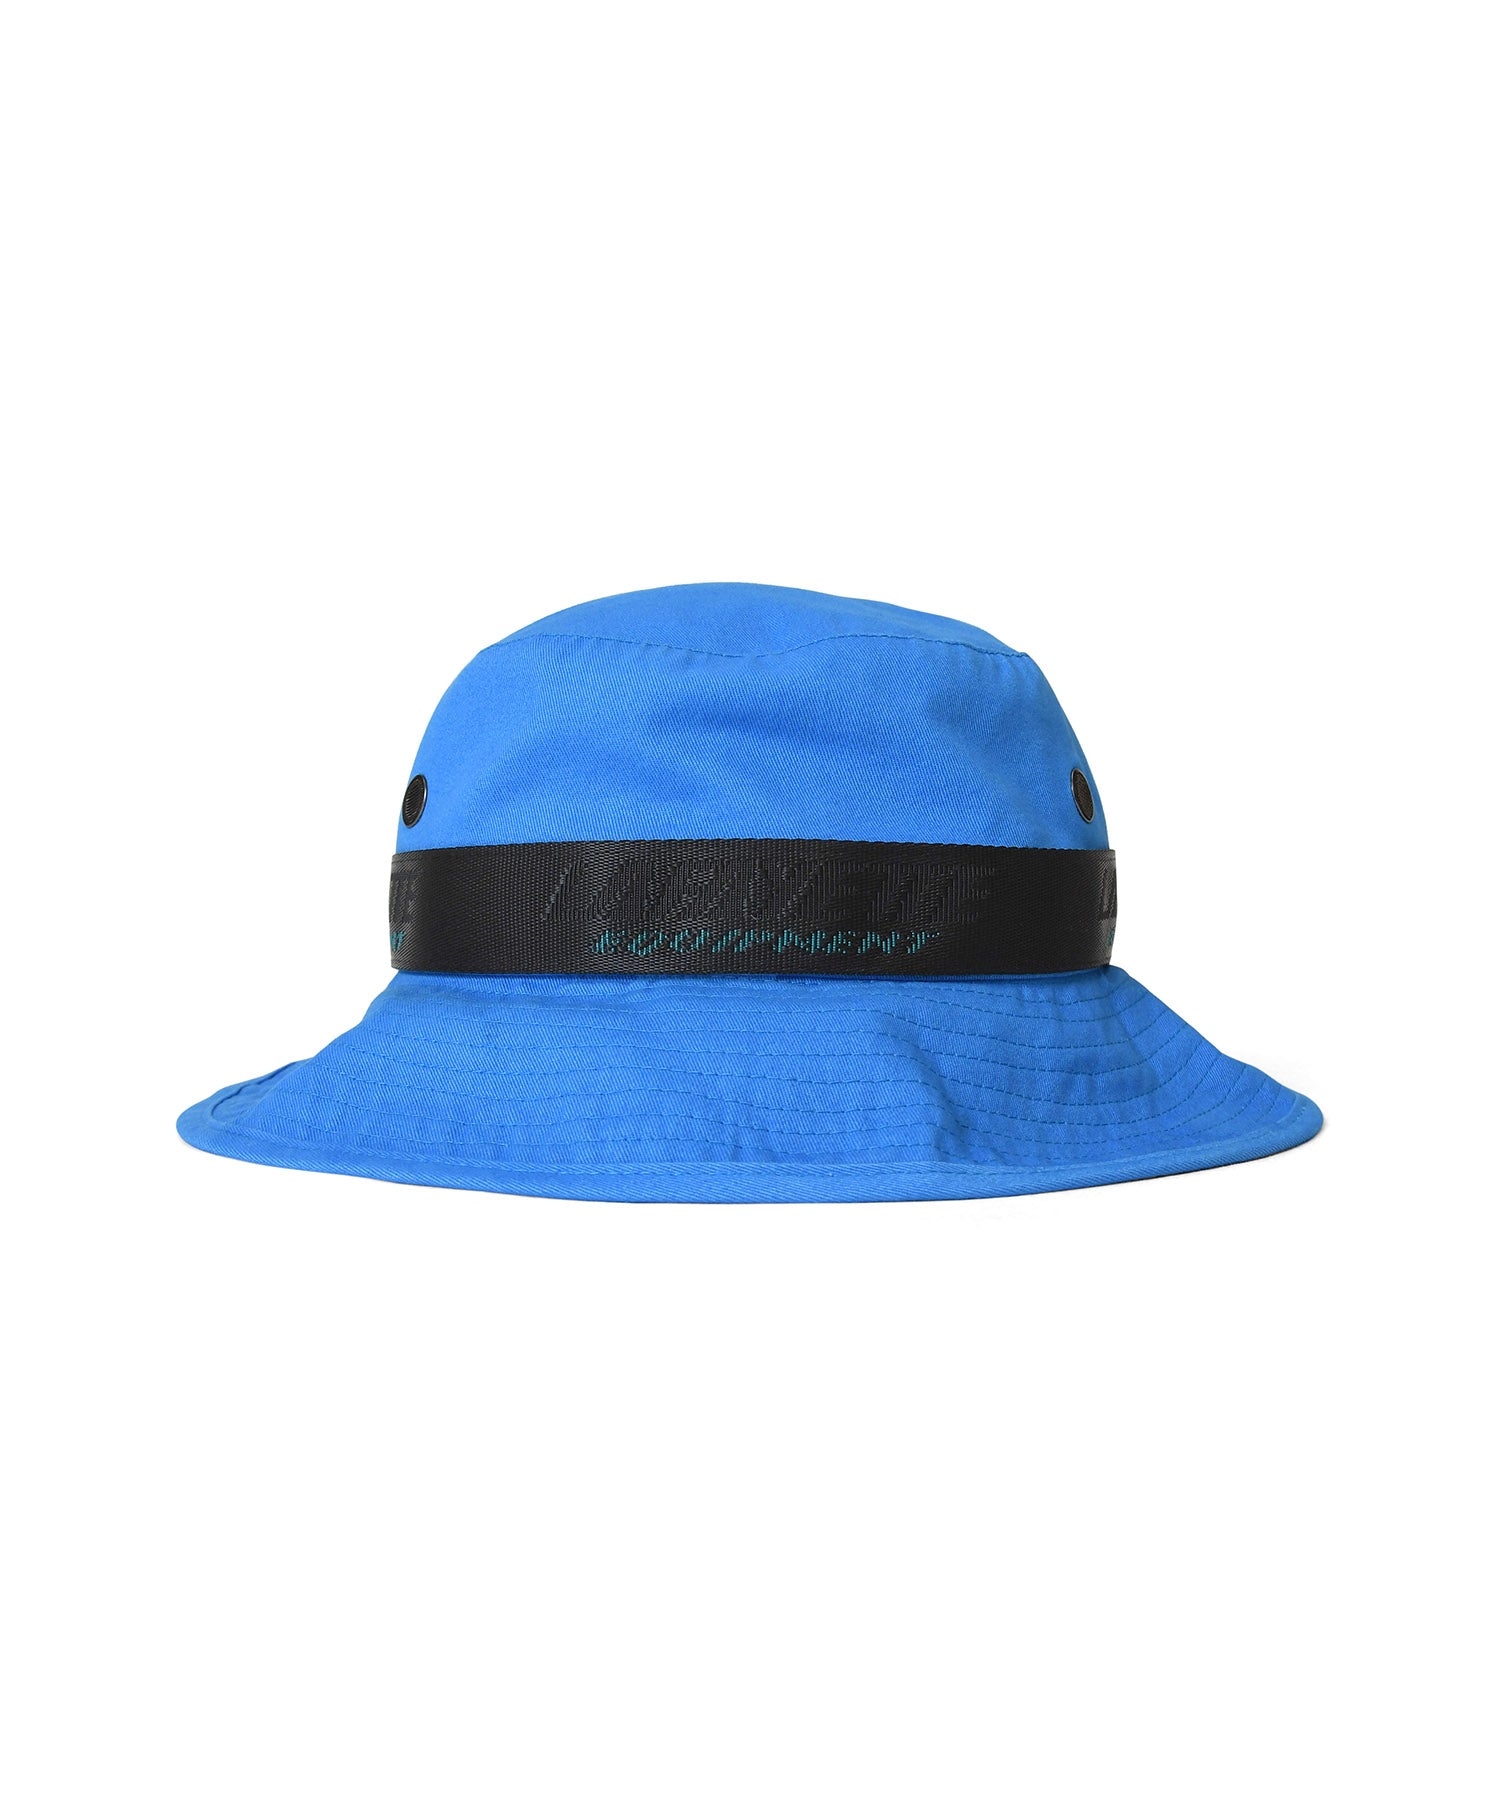 Lafayette EQUIPMENT LOGO BOONIE HAT LS201409 LIGHT BLUE